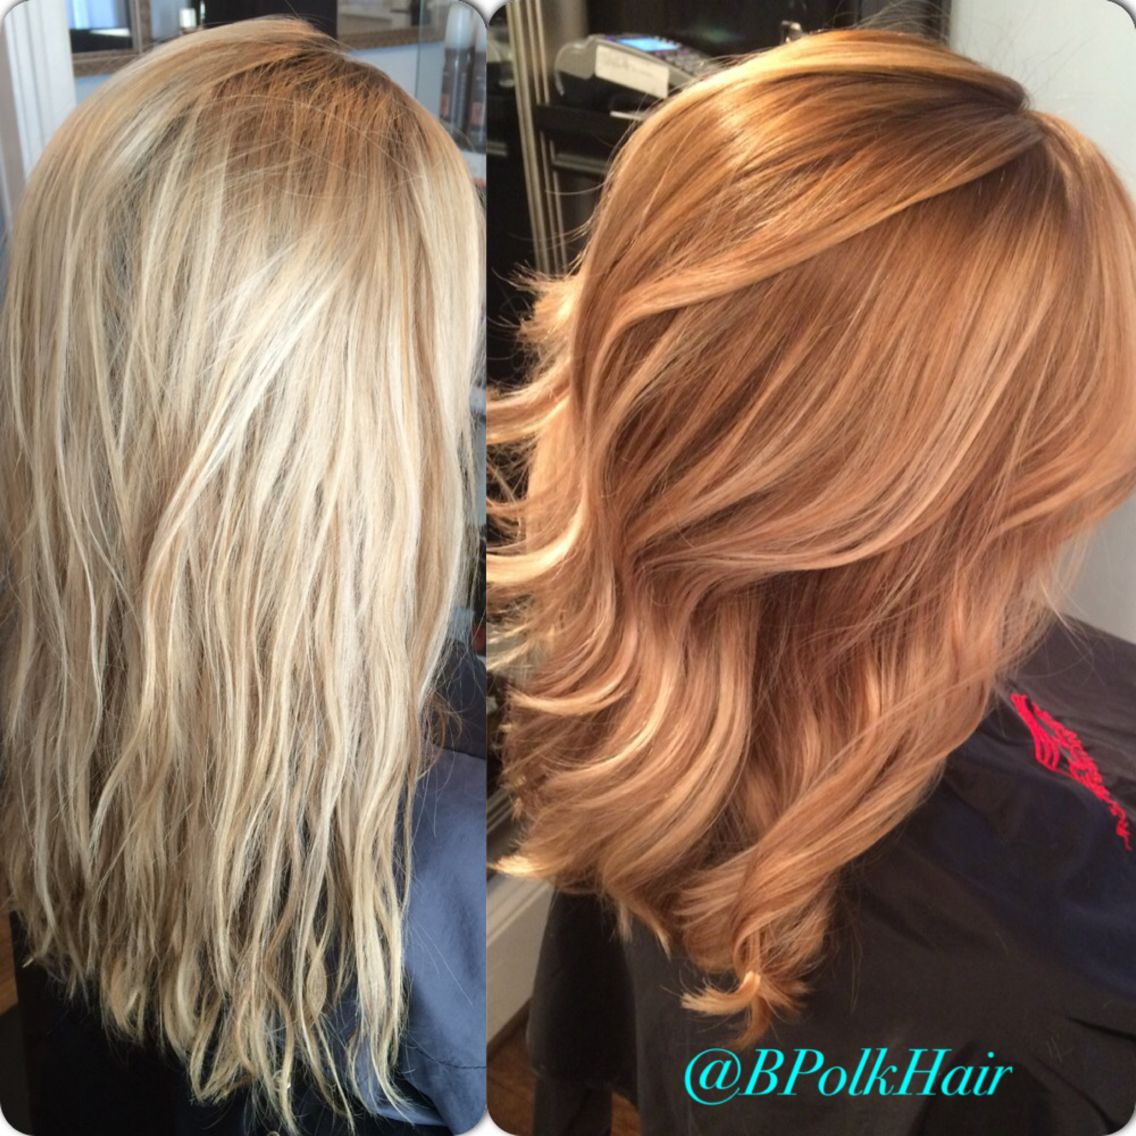 Before Amp After From Blonde To Rich Copper Balayage My